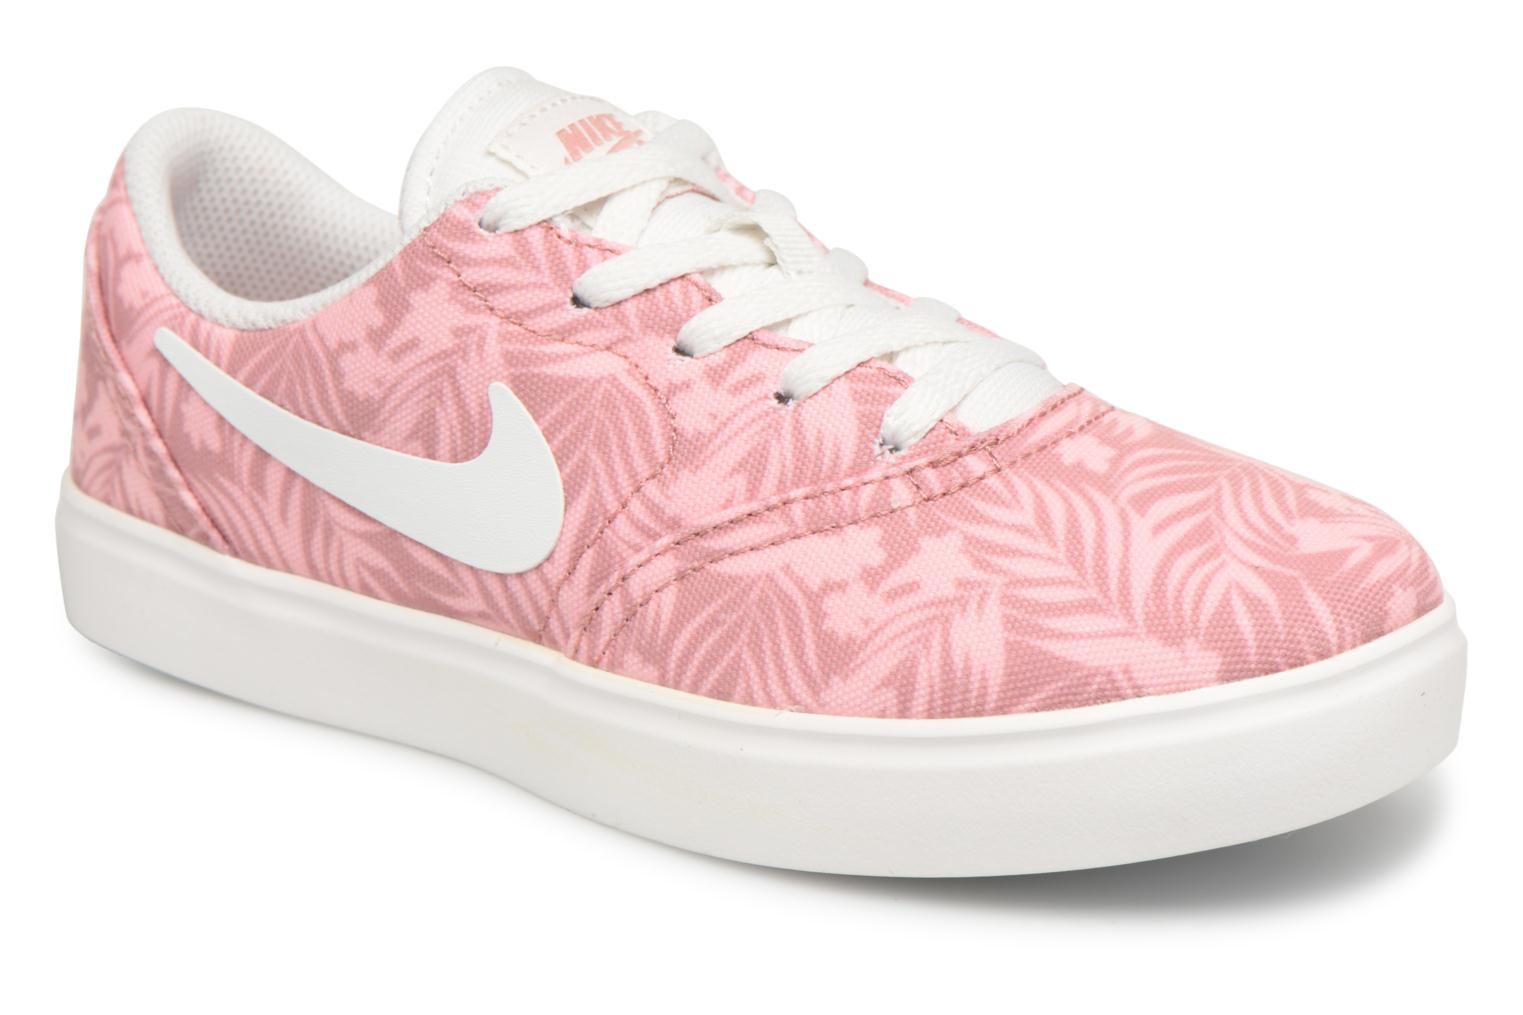 Coral Sb Summit Prm Nike Check Ps Bleached Pink Rust Nike White 6xnZ1v